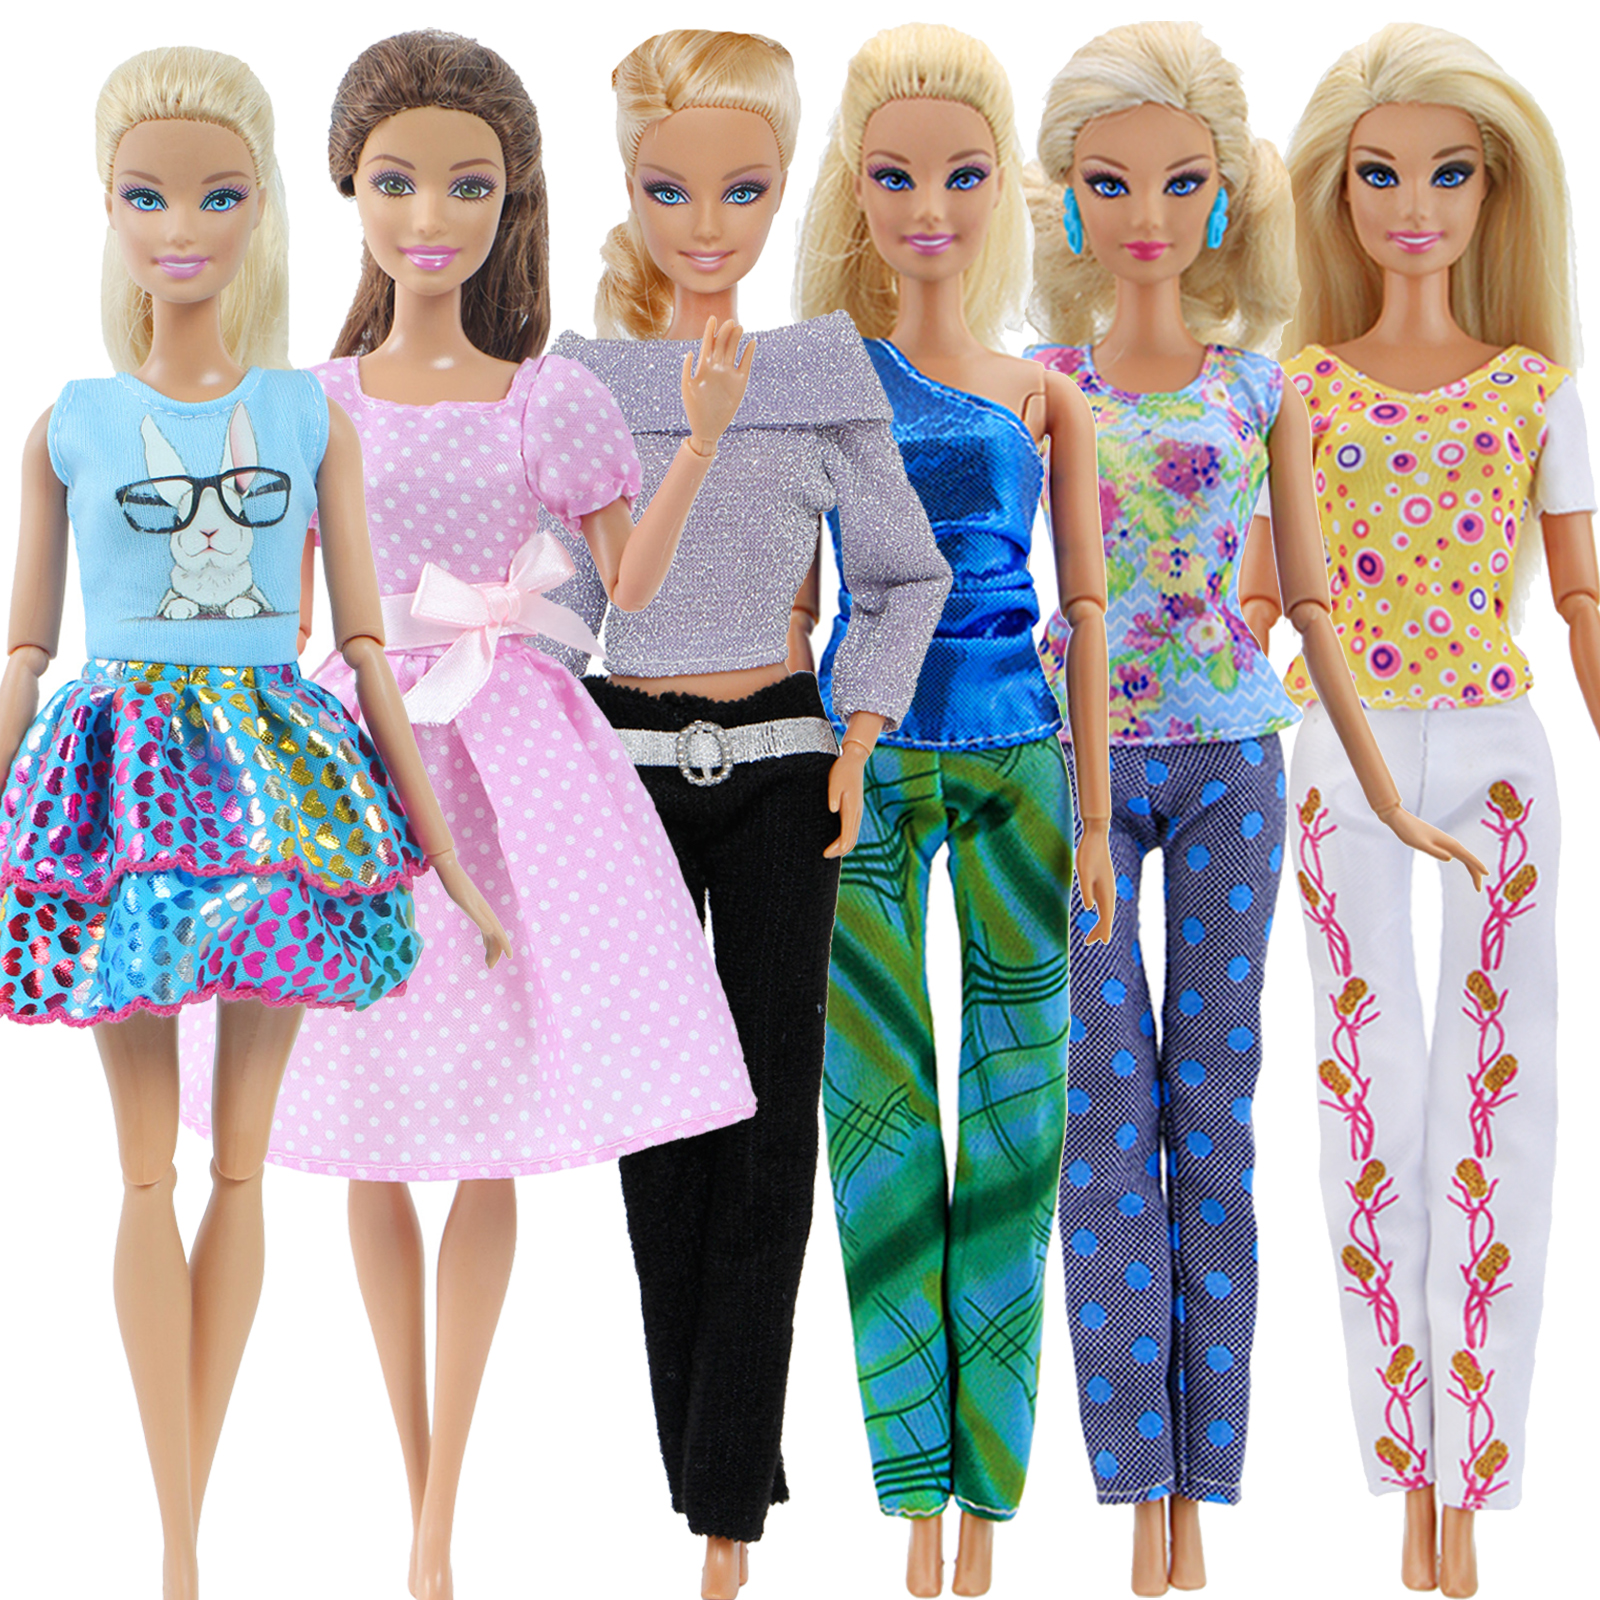 6x Daily Doll Clothes = 2 Cute Girl Dress + 4 Lady Outfits For Barbie Doll House Accessories Kid Toy Set Blouse Pants Trousers